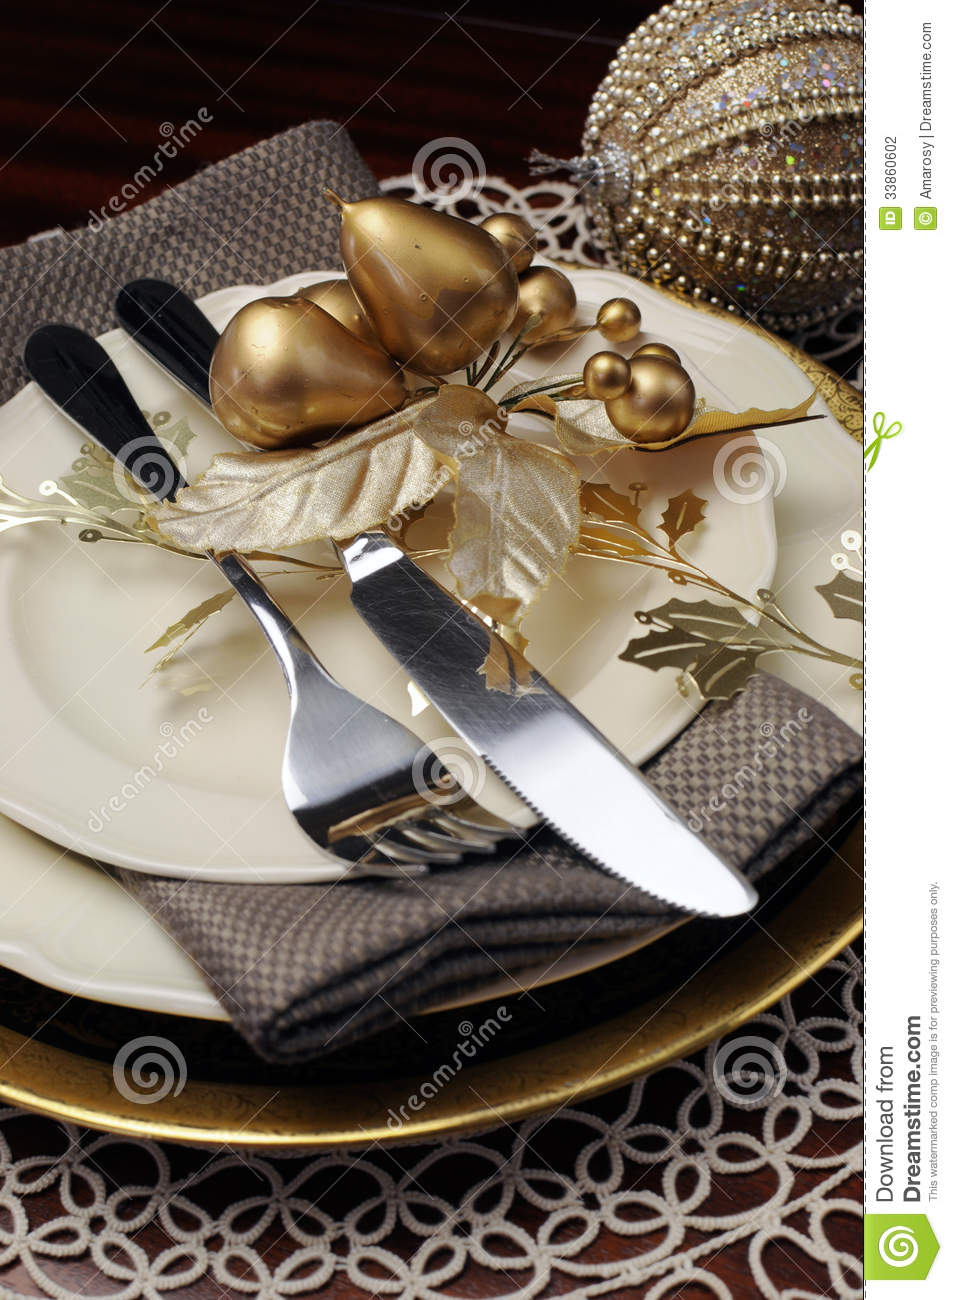 Gold Theme Christmas Dinner Table Setting Close Up On  : gold theme christmas dinner table setting close up cutlery plates latest trend metallic formal place fine bone 33860602 from www.dreamstime.com size 953 x 1300 jpeg 177kB